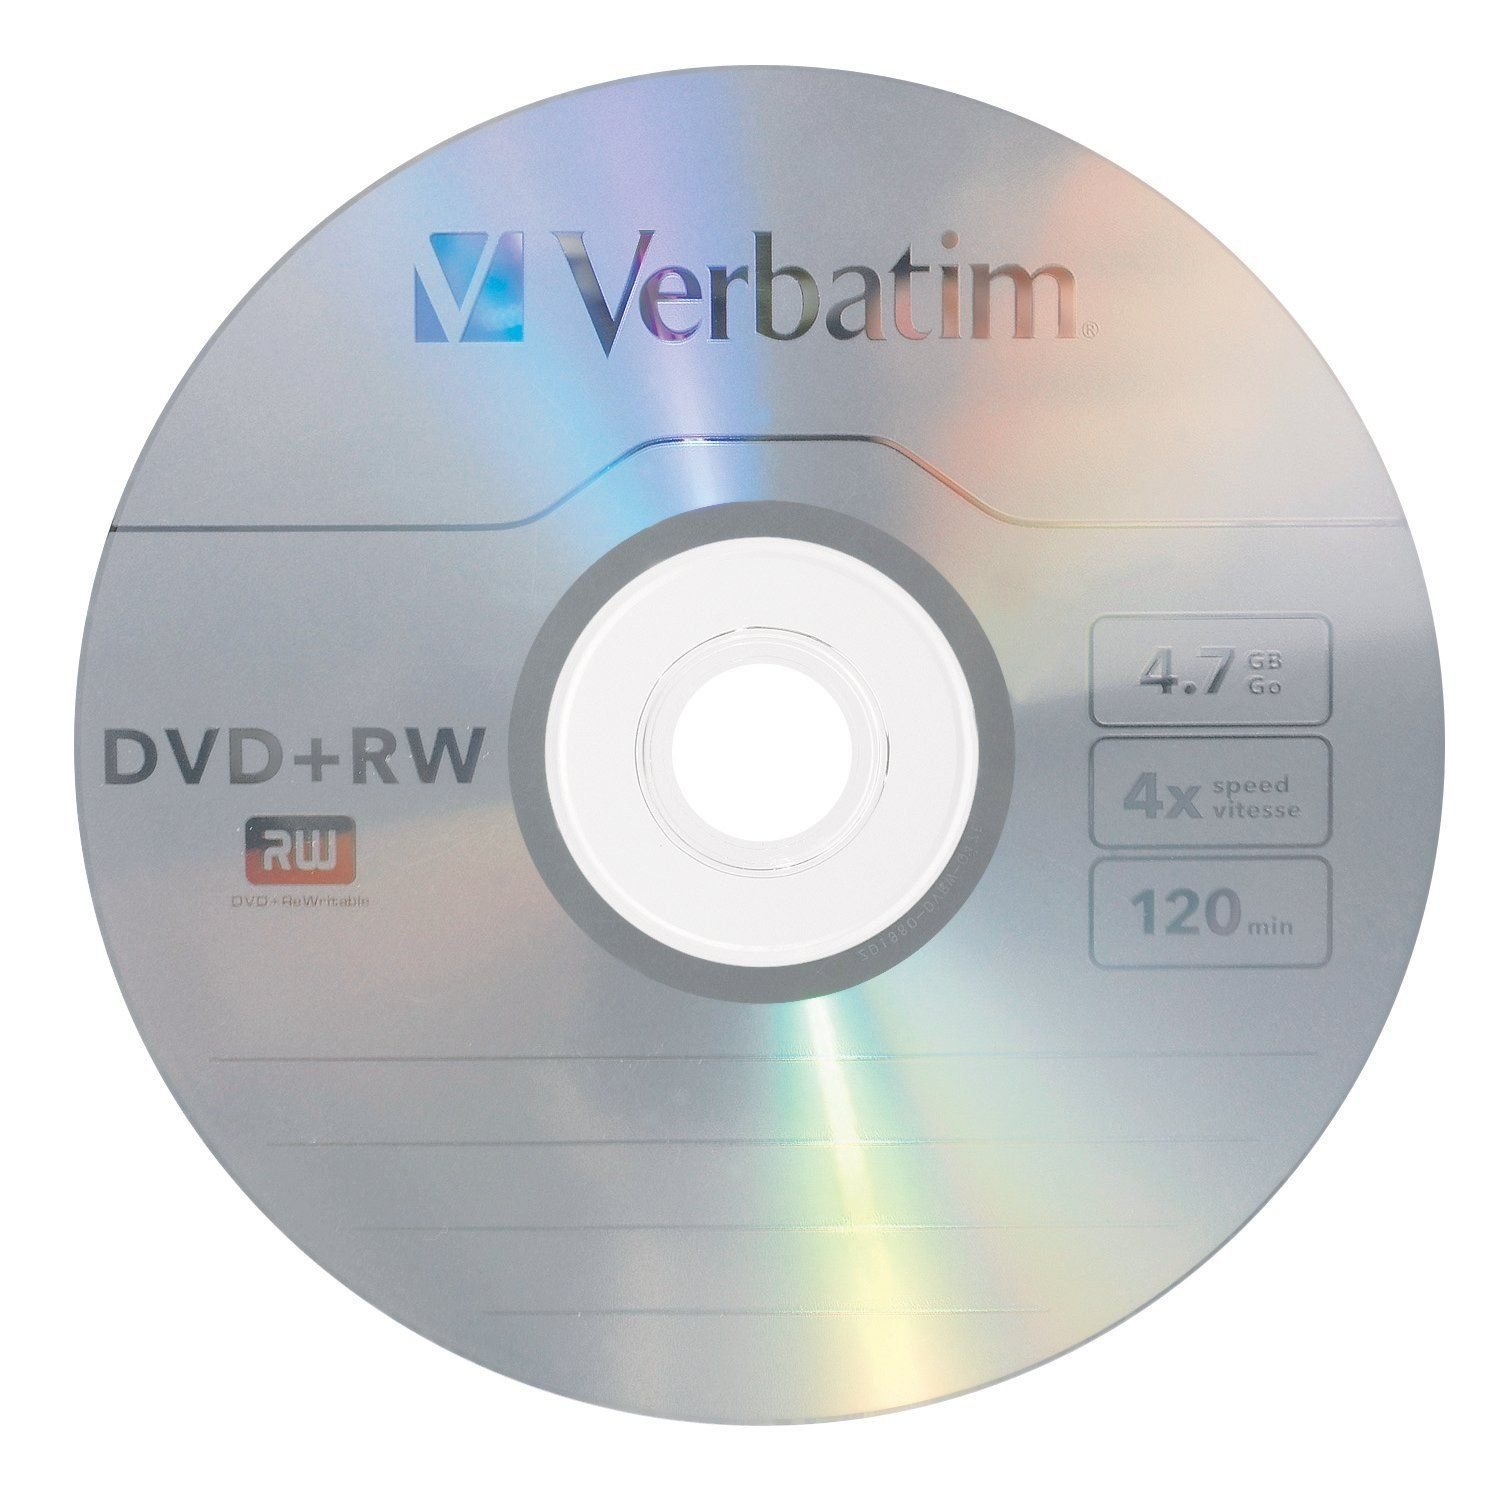 Buy Blank Dvd Rw Online Bharani Telugu Movie Heroine Images Cd 12x Ritek Excellent Bulk 50 Find Your Discs The Verbatim 4x Speed Dvds Gives You 120 Minutes Recording Time Per Disk